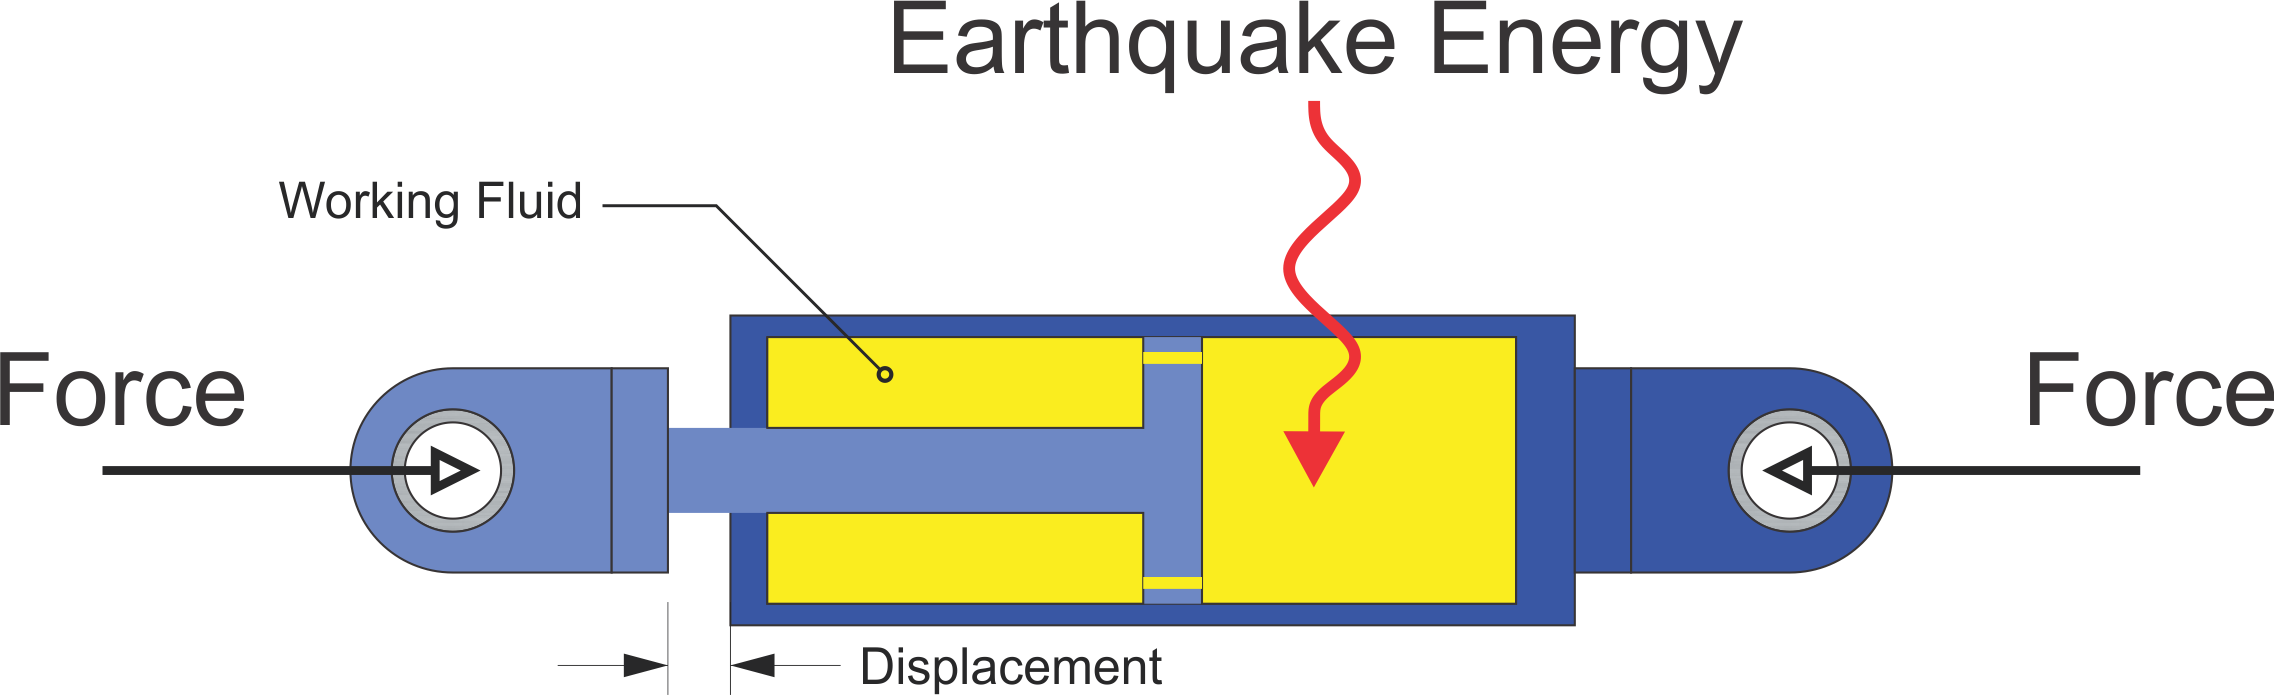 Earthquake clipart building structure. Frequently asked questions quaketek